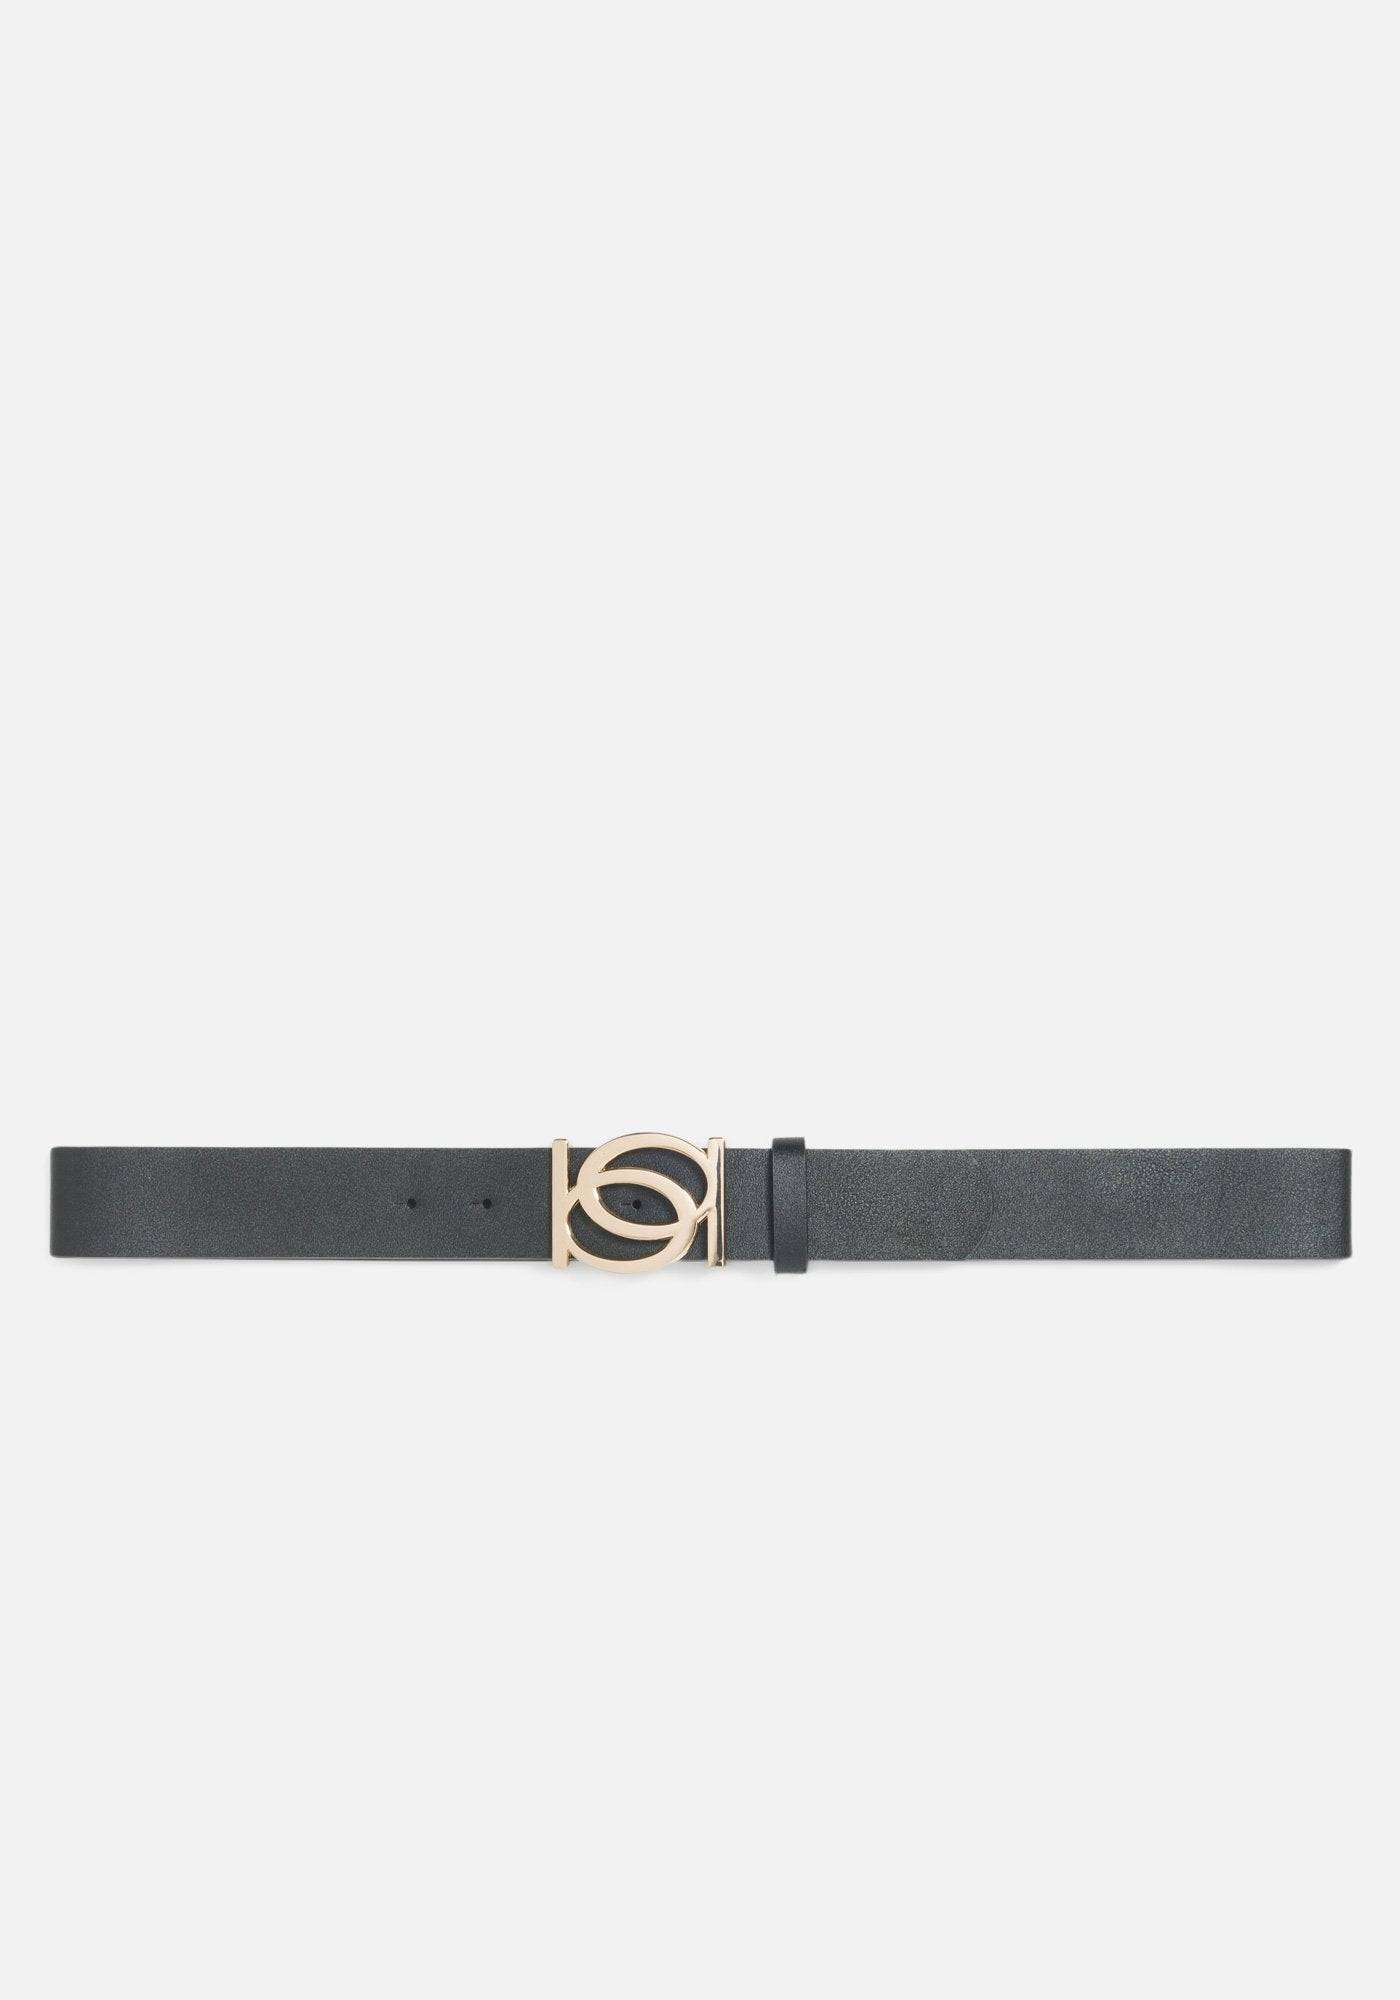 Bebe Women's Goldtone Logo Belt, Size Small in Black Synthetic